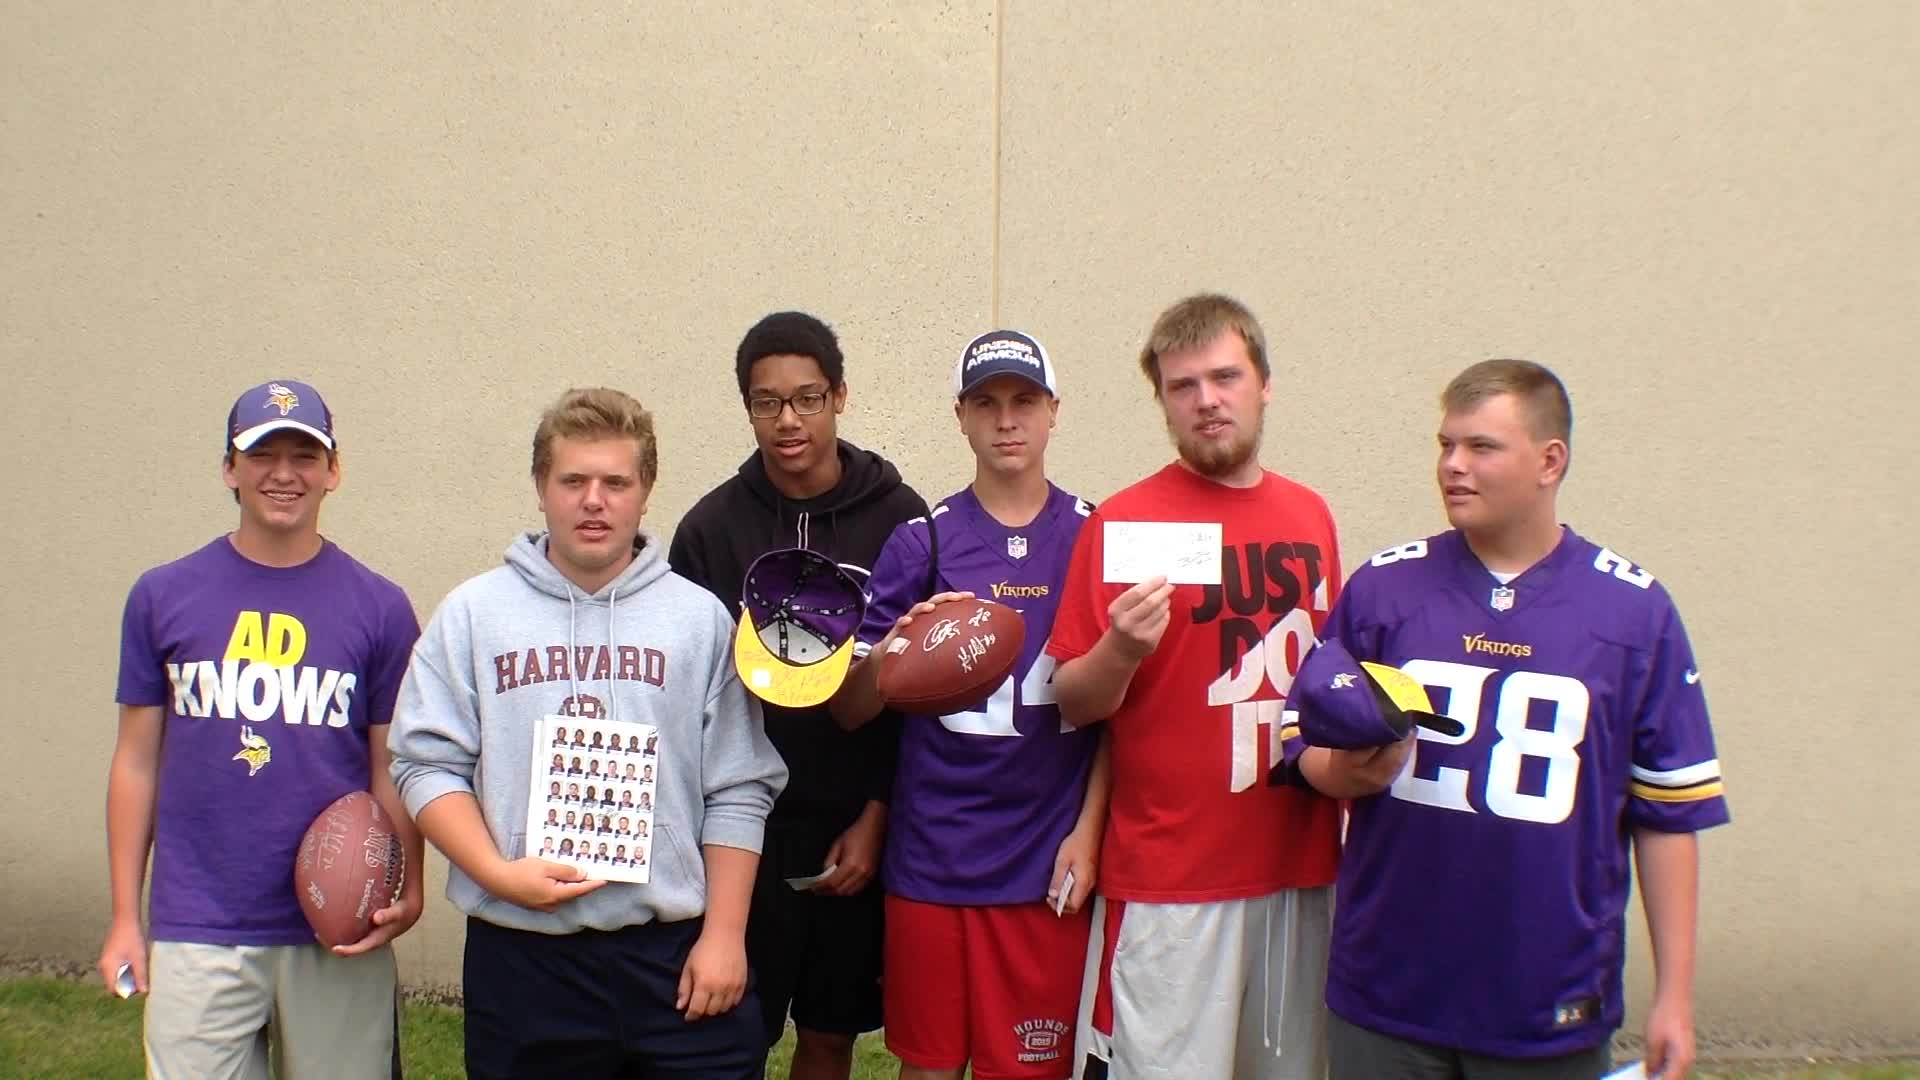 Tommy Anderson, Jan Anderson, Jonah Wehr, Iyzaya Gill, Collin Peterson, and Anthony Provinzino, Duluth, MN - Fan experiences at Minnesota Vikings Training Camp at Minnesota State University, Mankato